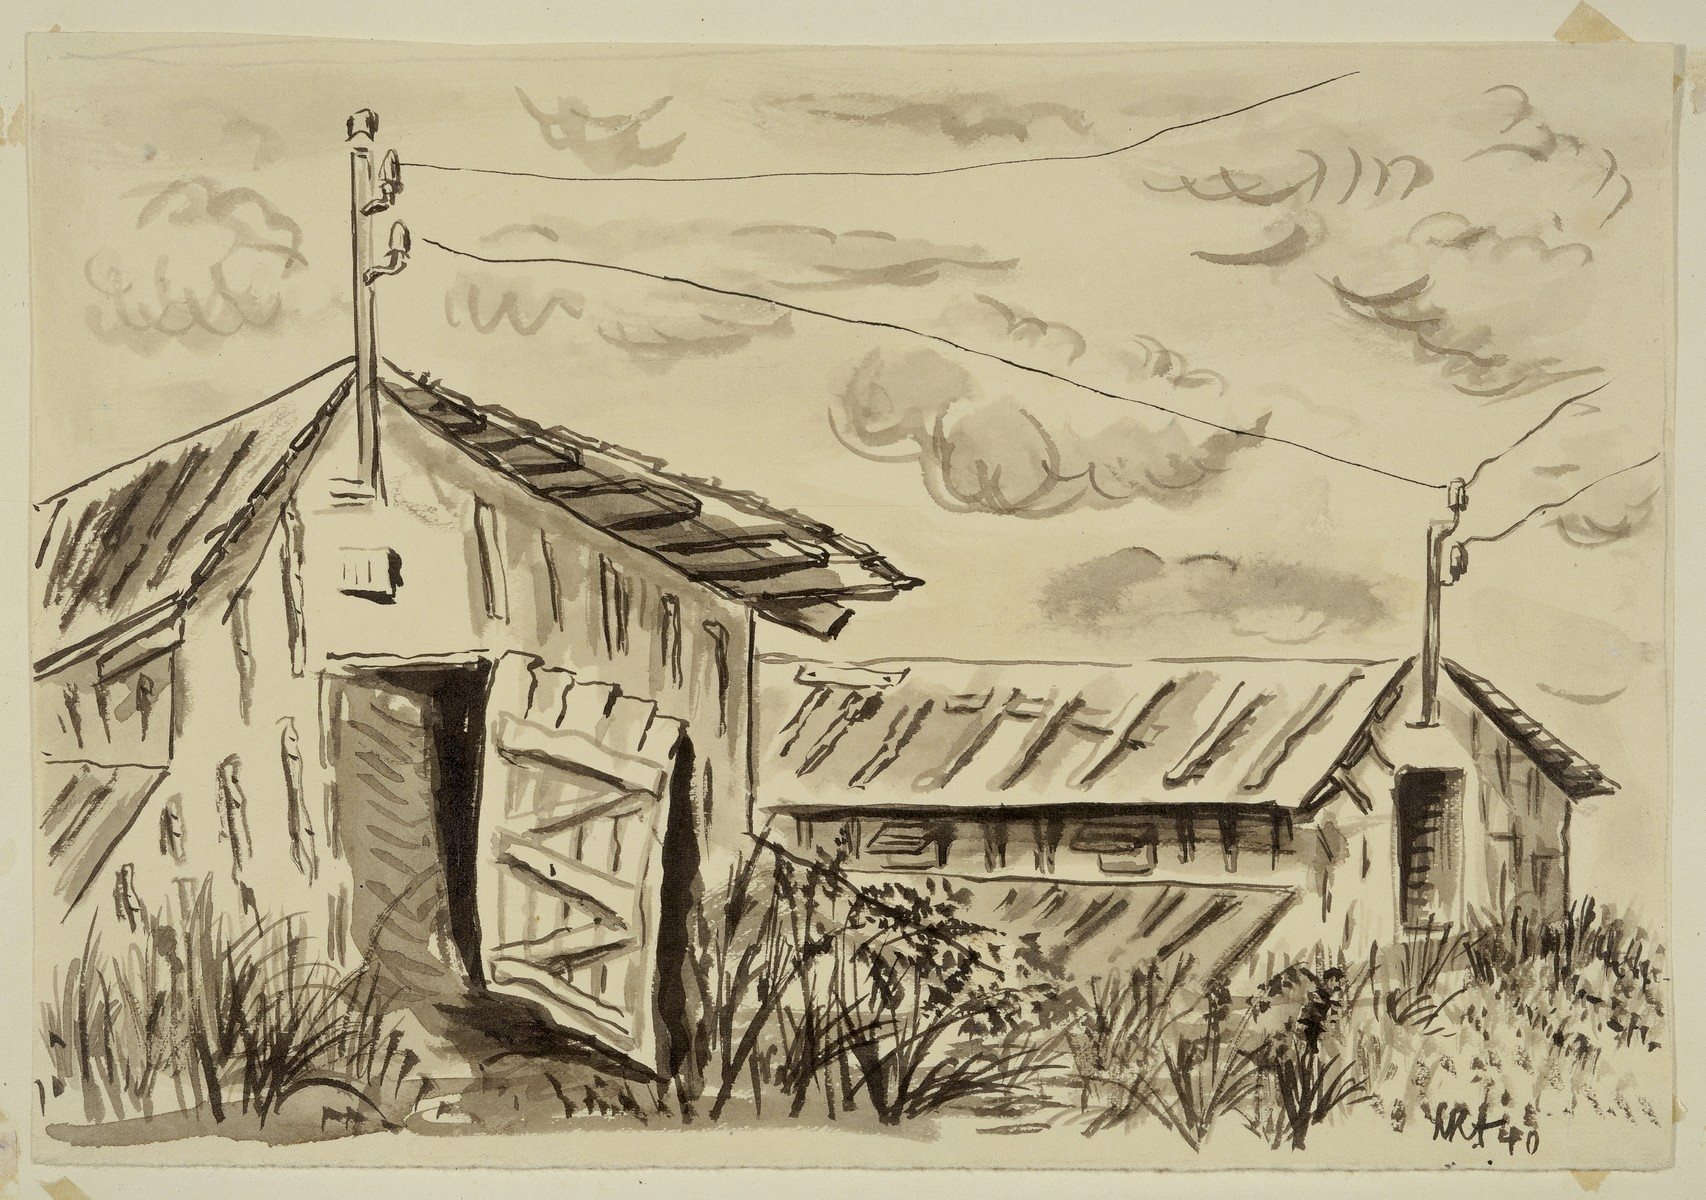 """Convalescent Barracks"" by Lili Andrieux.  Sketch of wooden barracks with doors open, and electric utility pole with wires above doors."